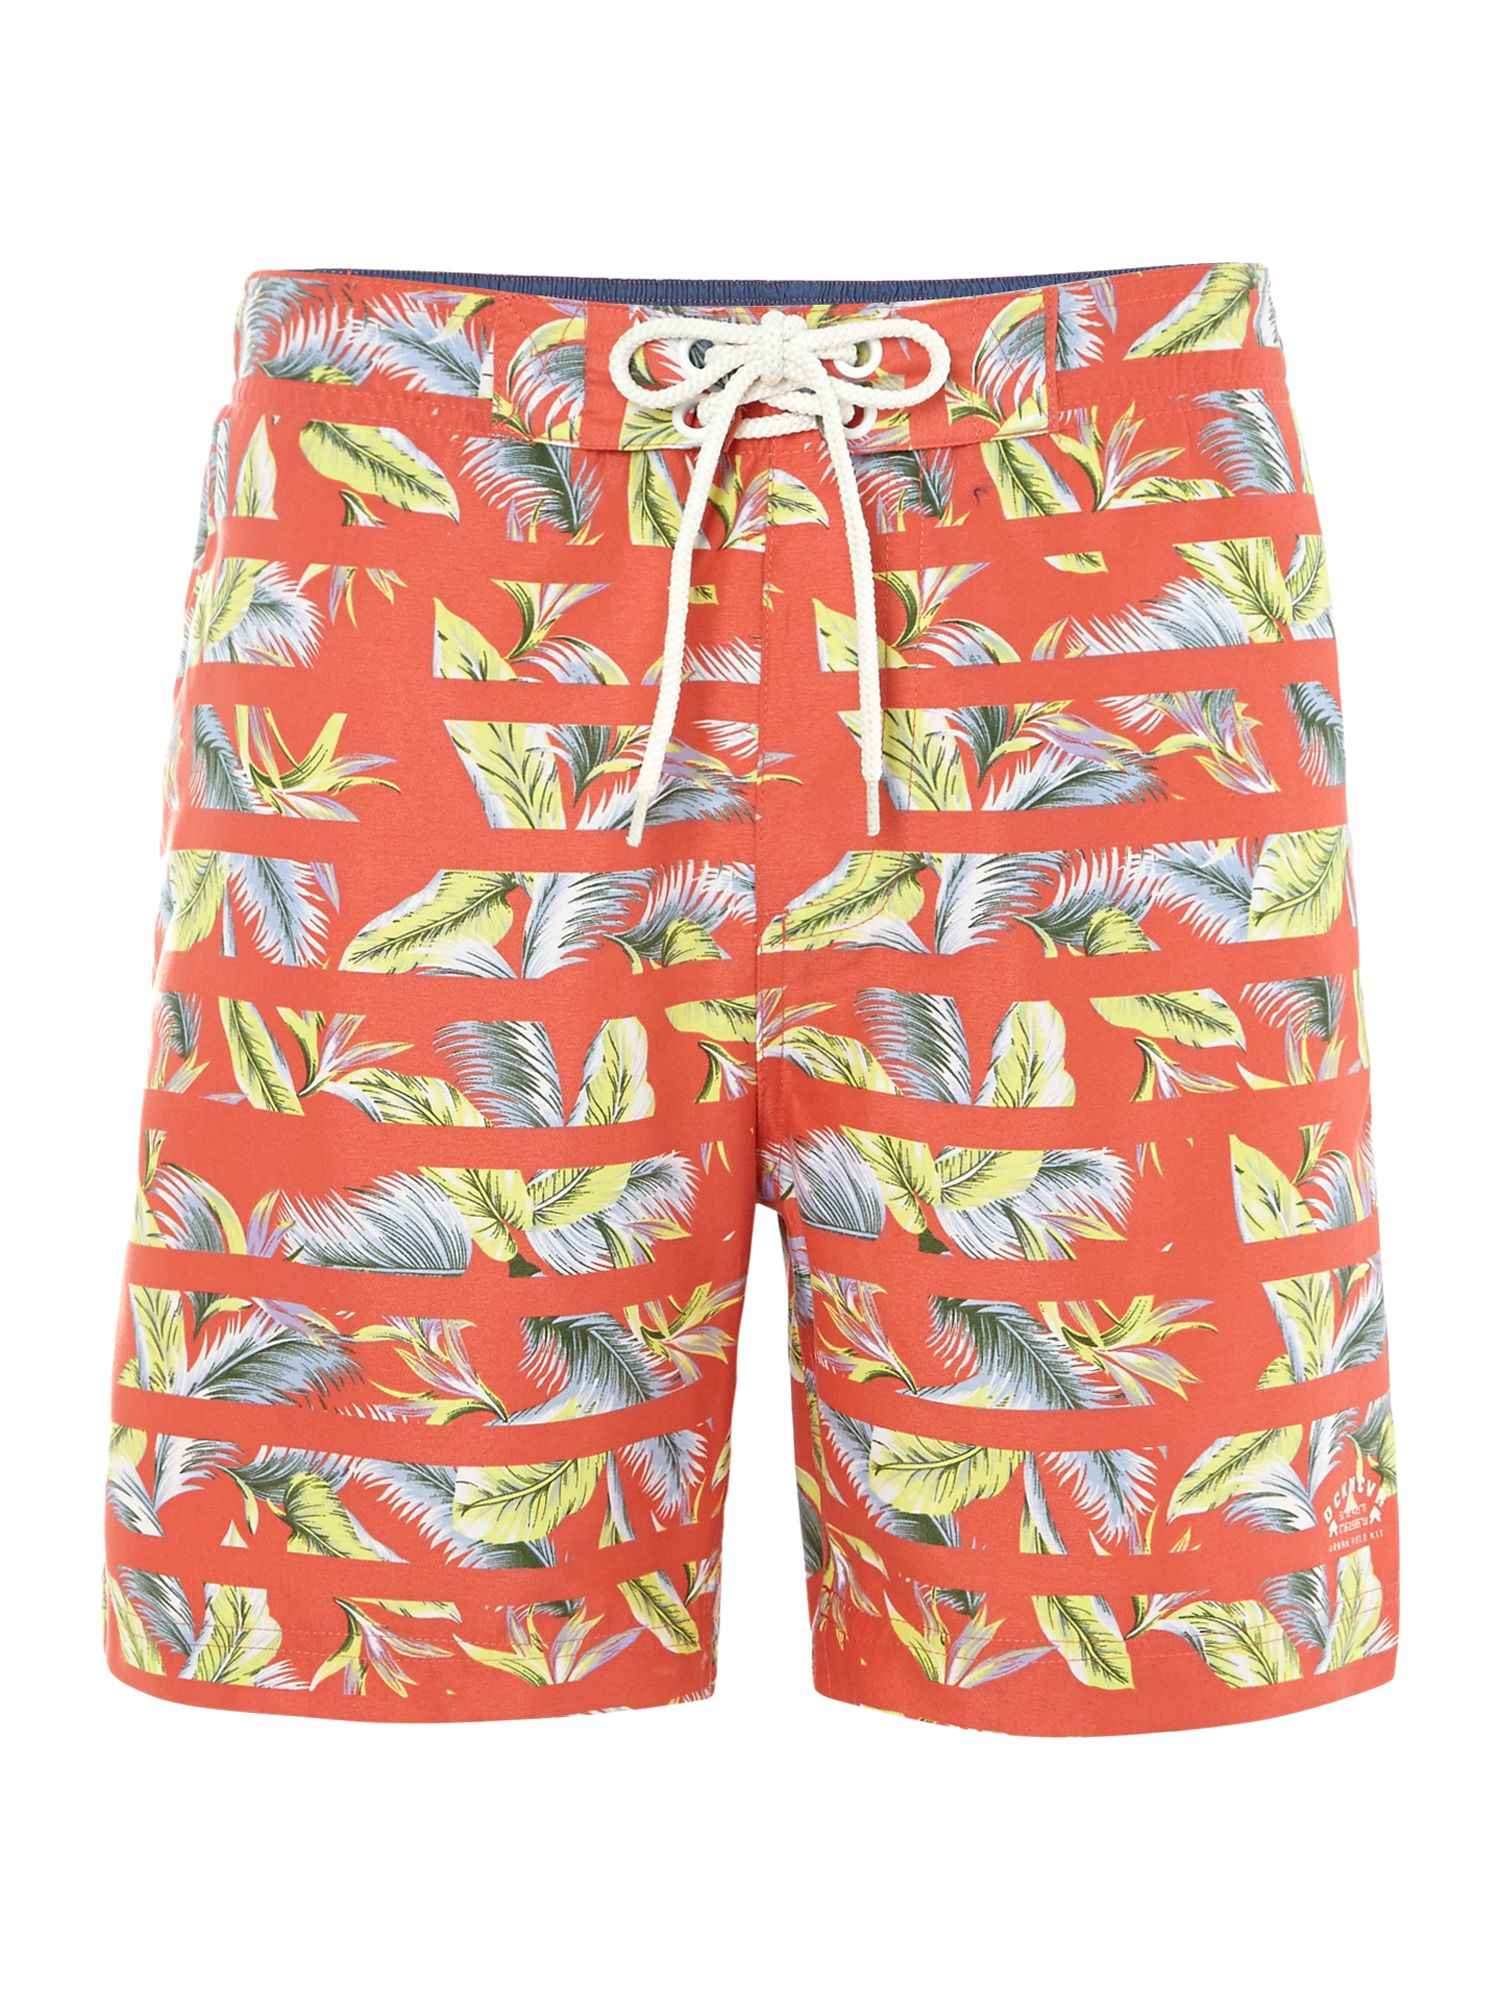 Danno hawaiian print swim shorts